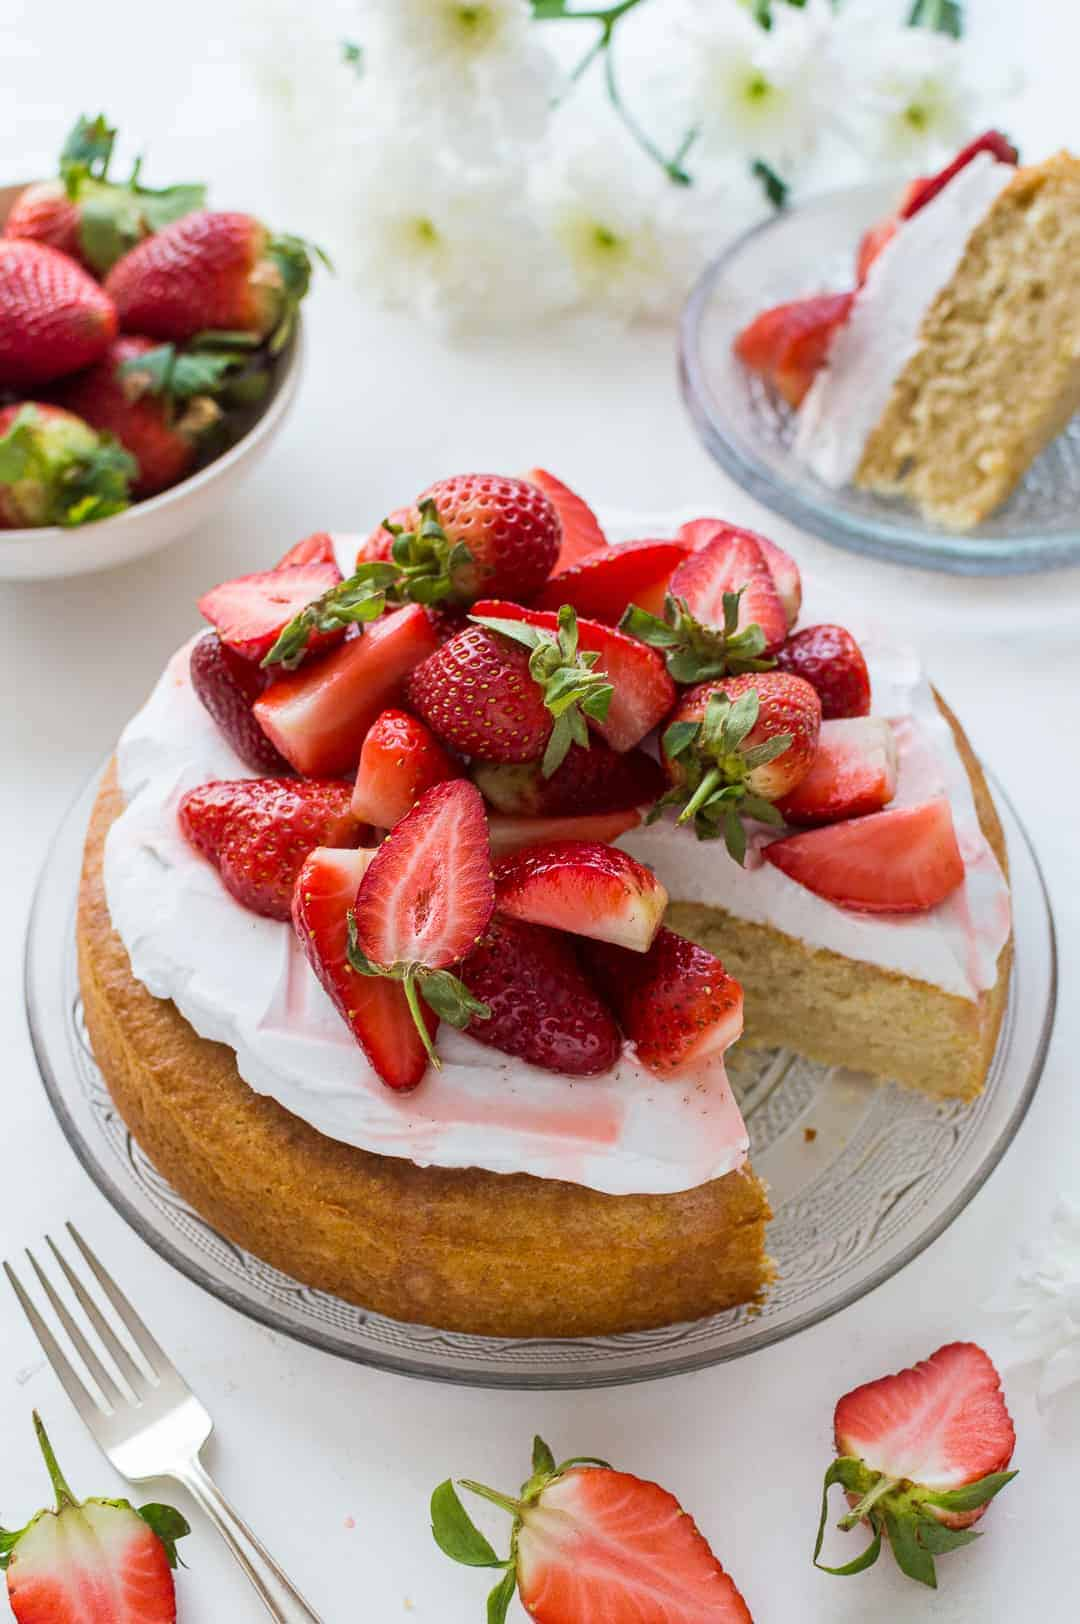 Vegan lemon almond cake with coconut whipped cream and macerated strawberries on a glass plate on a white background with strawberries, flowers and a slice of cake.